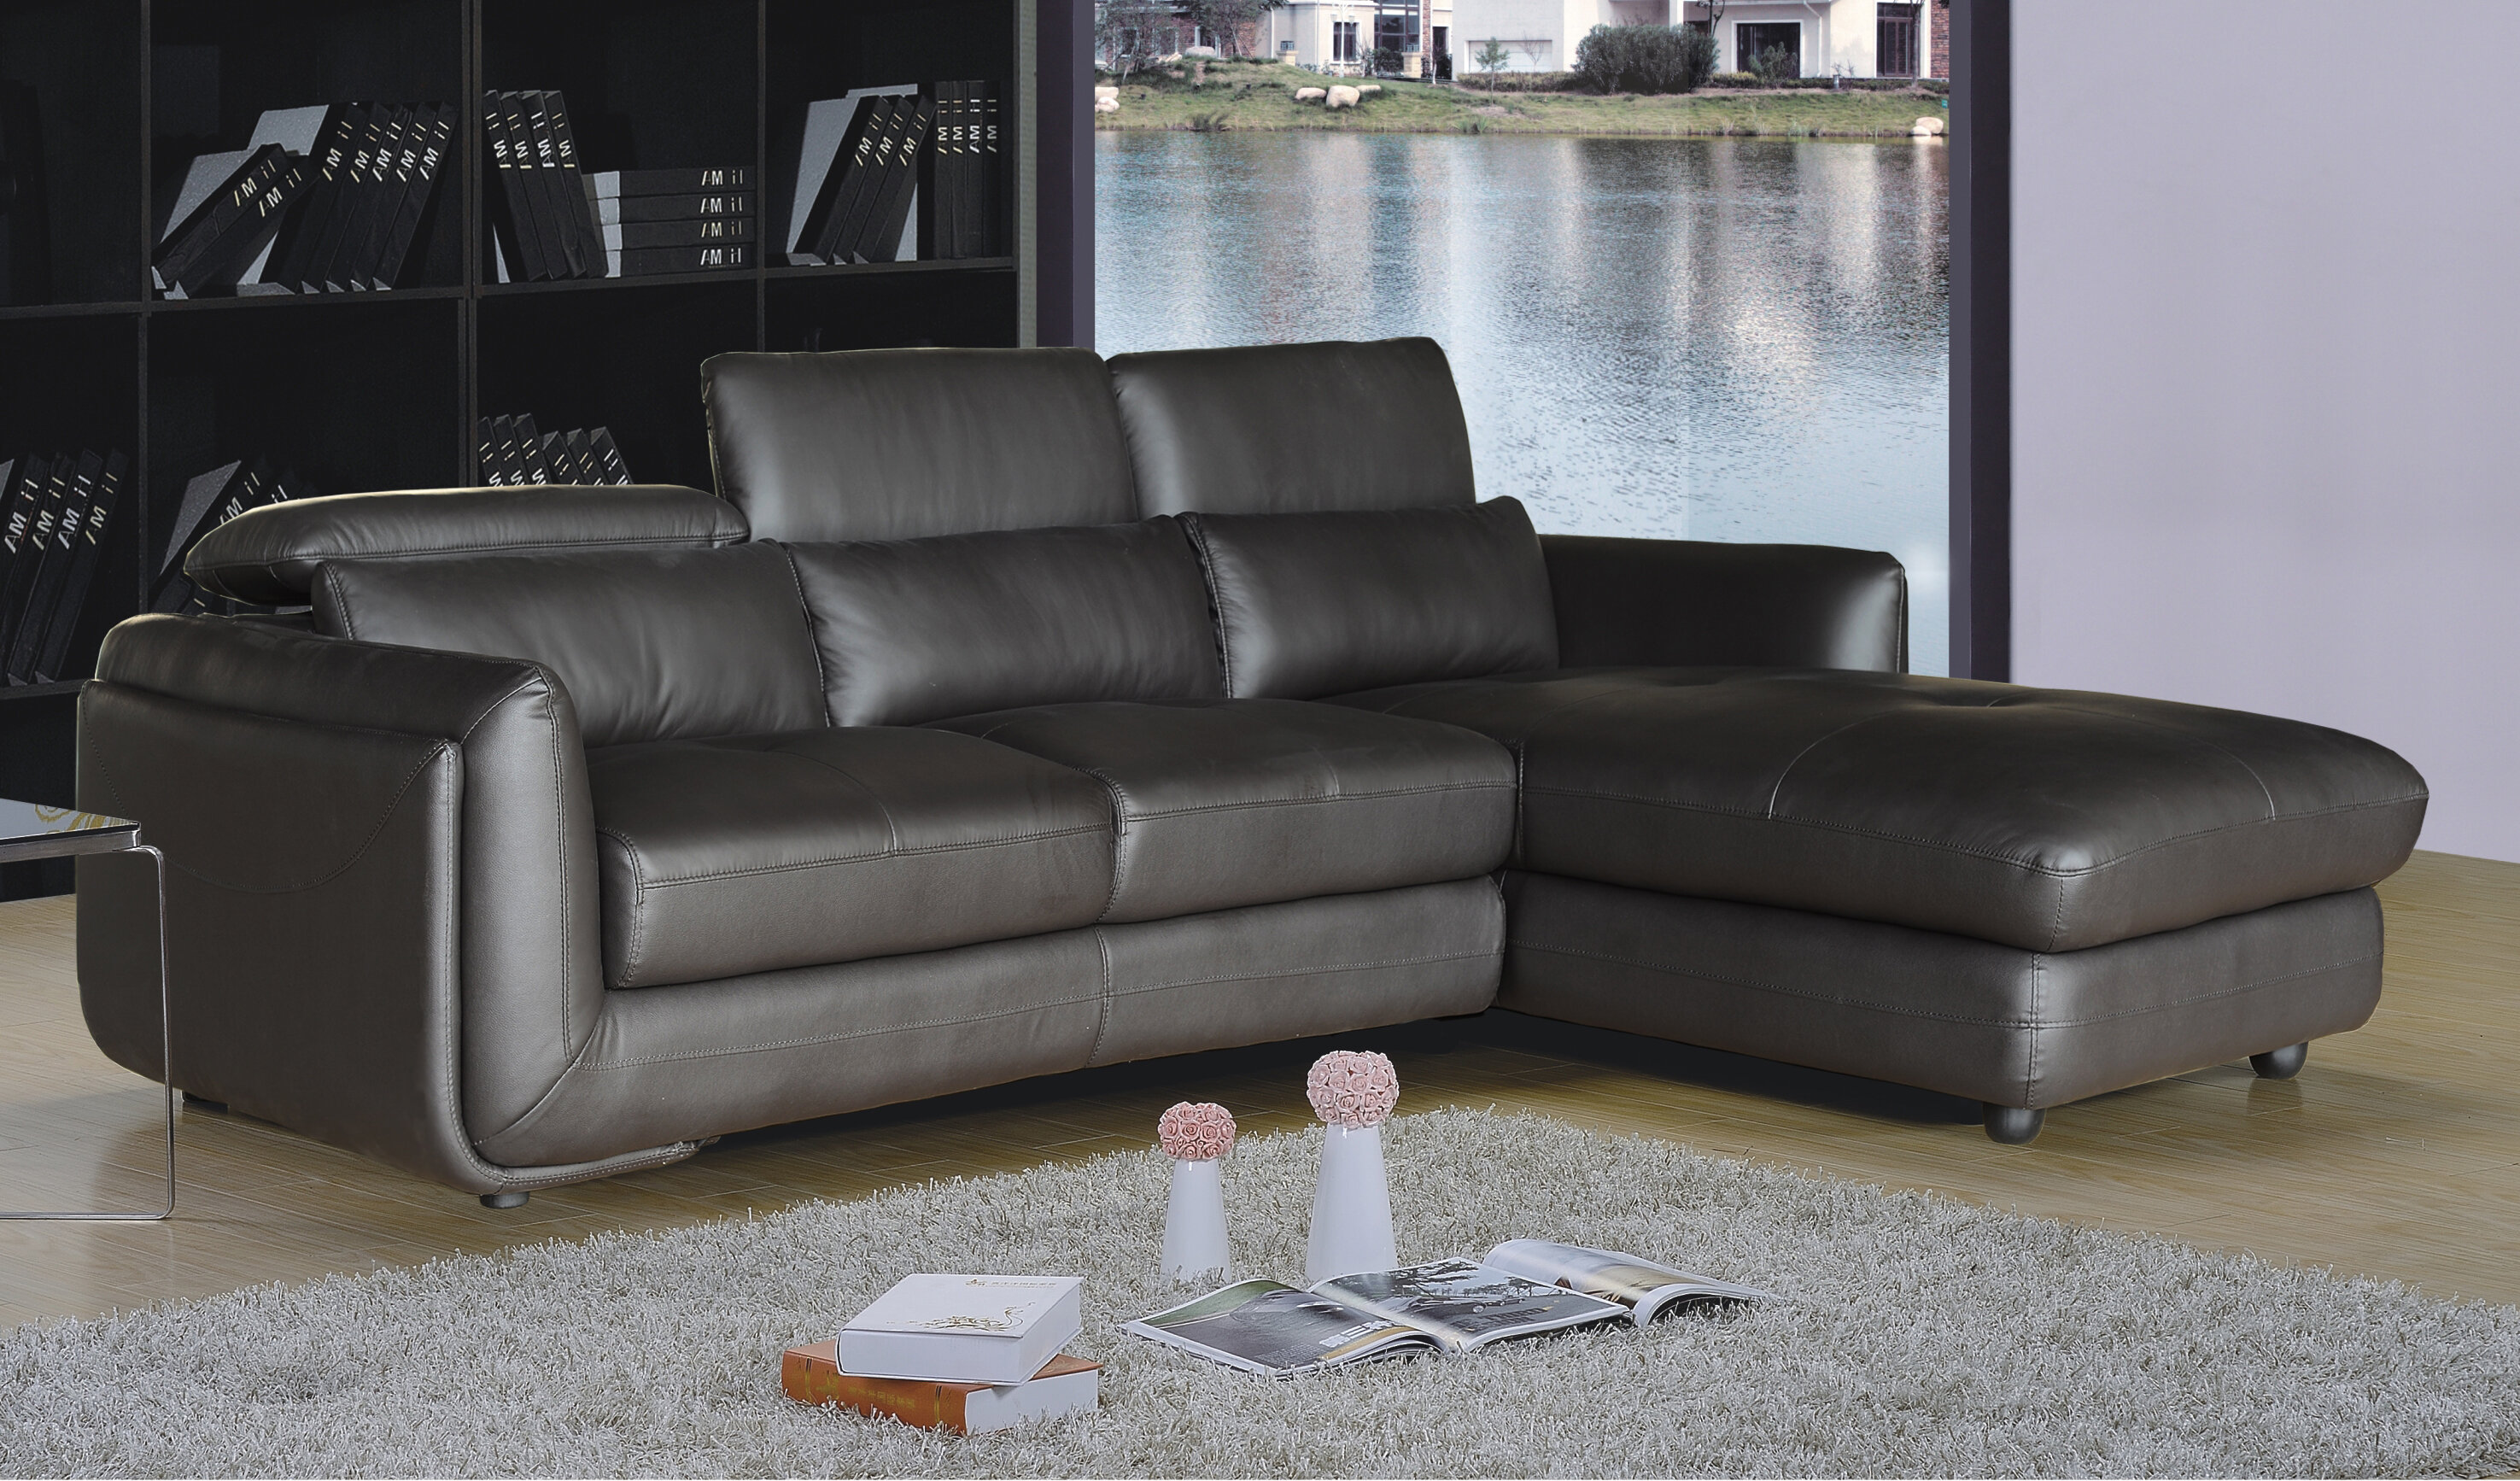 recliner chaise sofa with leather for and living comfortable room sectional modern